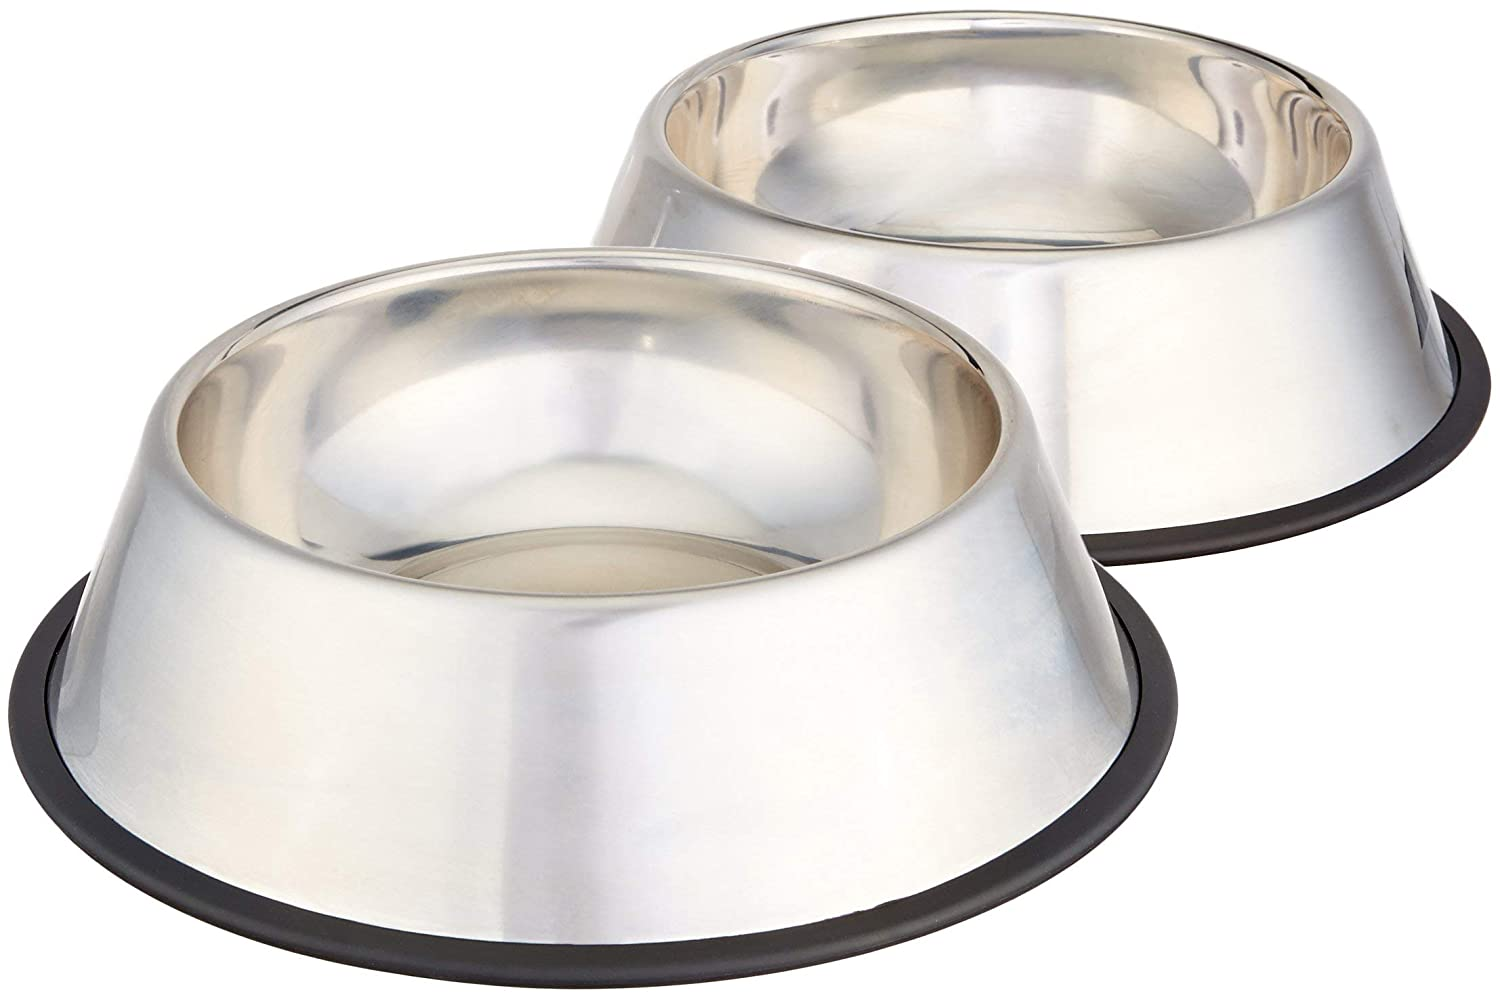 Pure color 26cm B-BODY Stainless Steel Dog Bowl Rubber Base Small Large Dogs, Pets Feeder Bowl Water Bowl Perfect Choice